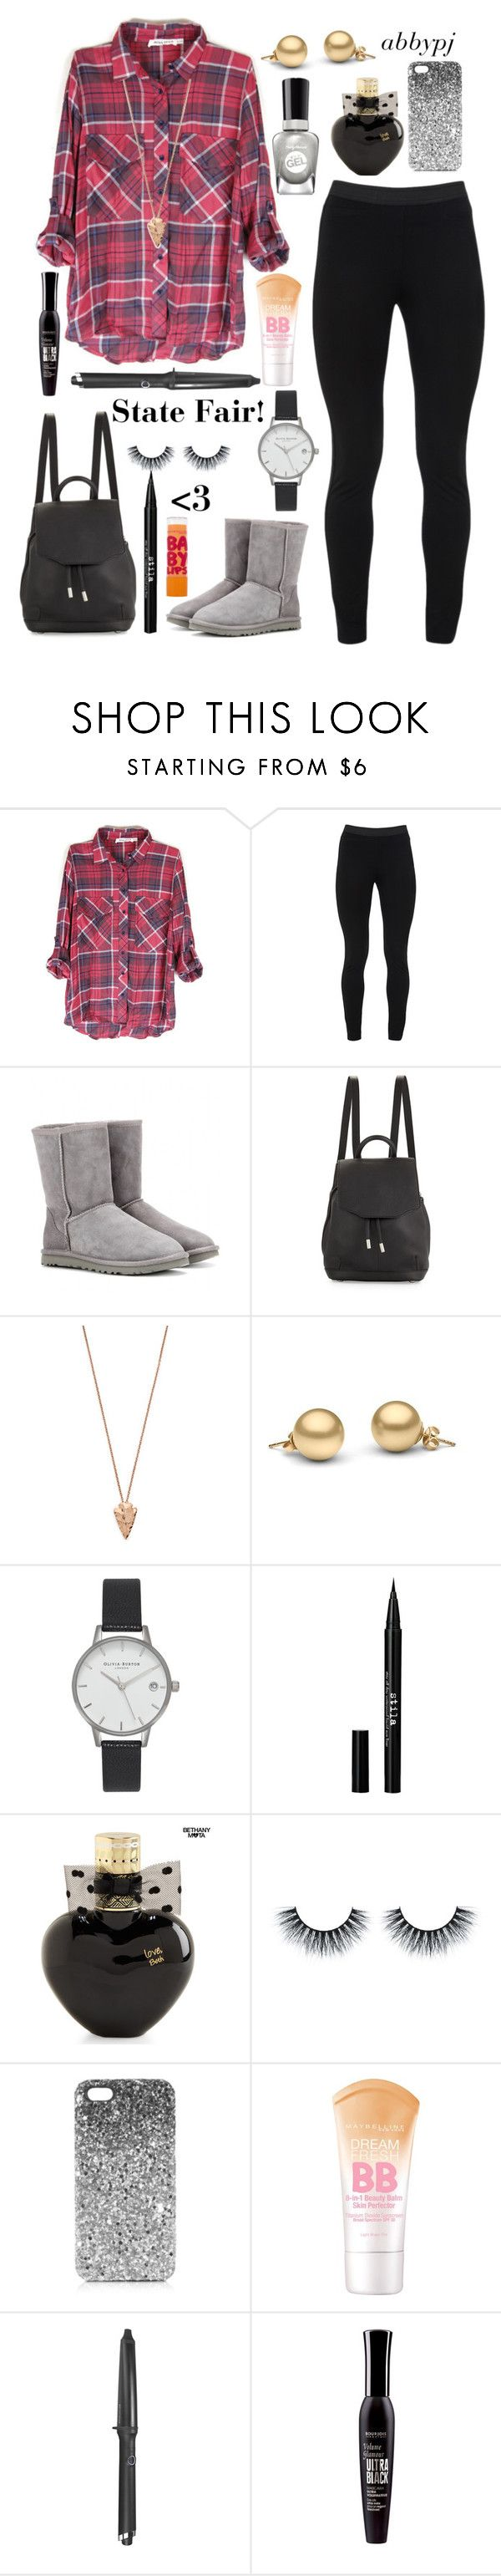 """State Fair Outfit!"" by abbypj ❤ liked on Polyvore featuring Peace of Cloth, UGG Australia, rag & bone, Pamela Love, Olivia Burton, Sally Hansen, Stila, Aéropostale, Topshop and GHD"